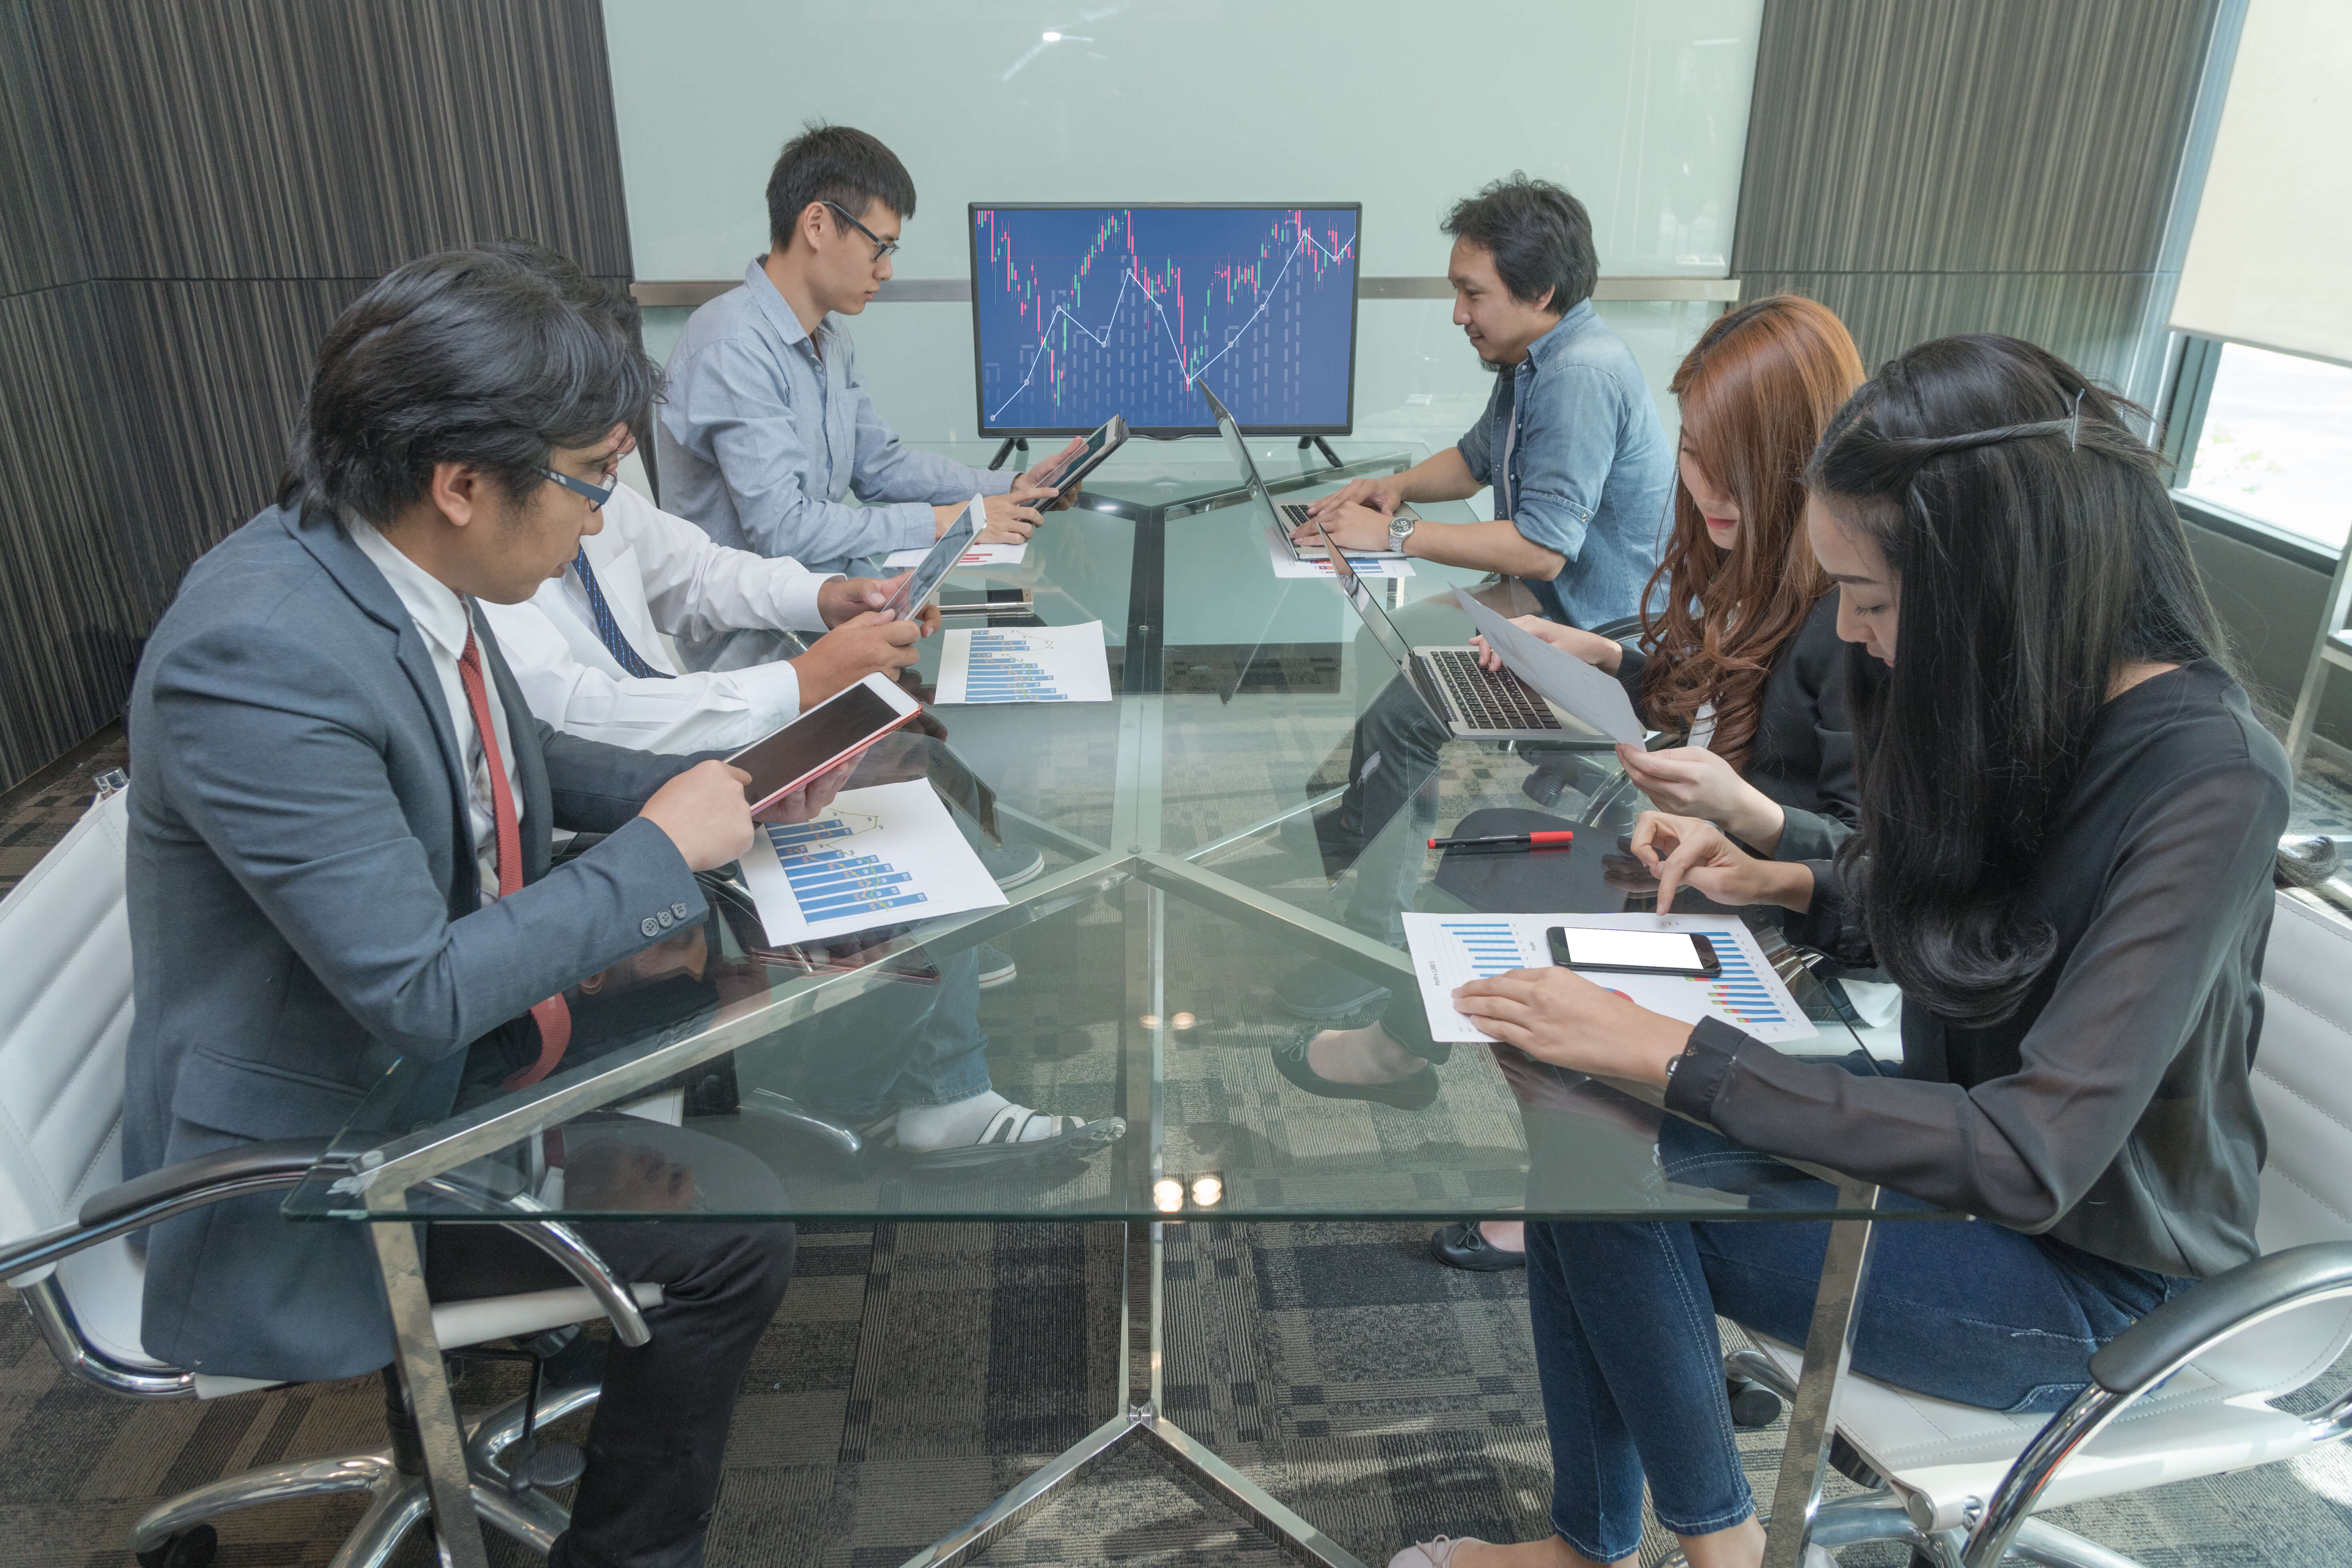 Innovation rate and productivity in the APAC region are expected to almost double with the deployment of AI. Source: Shutterstock